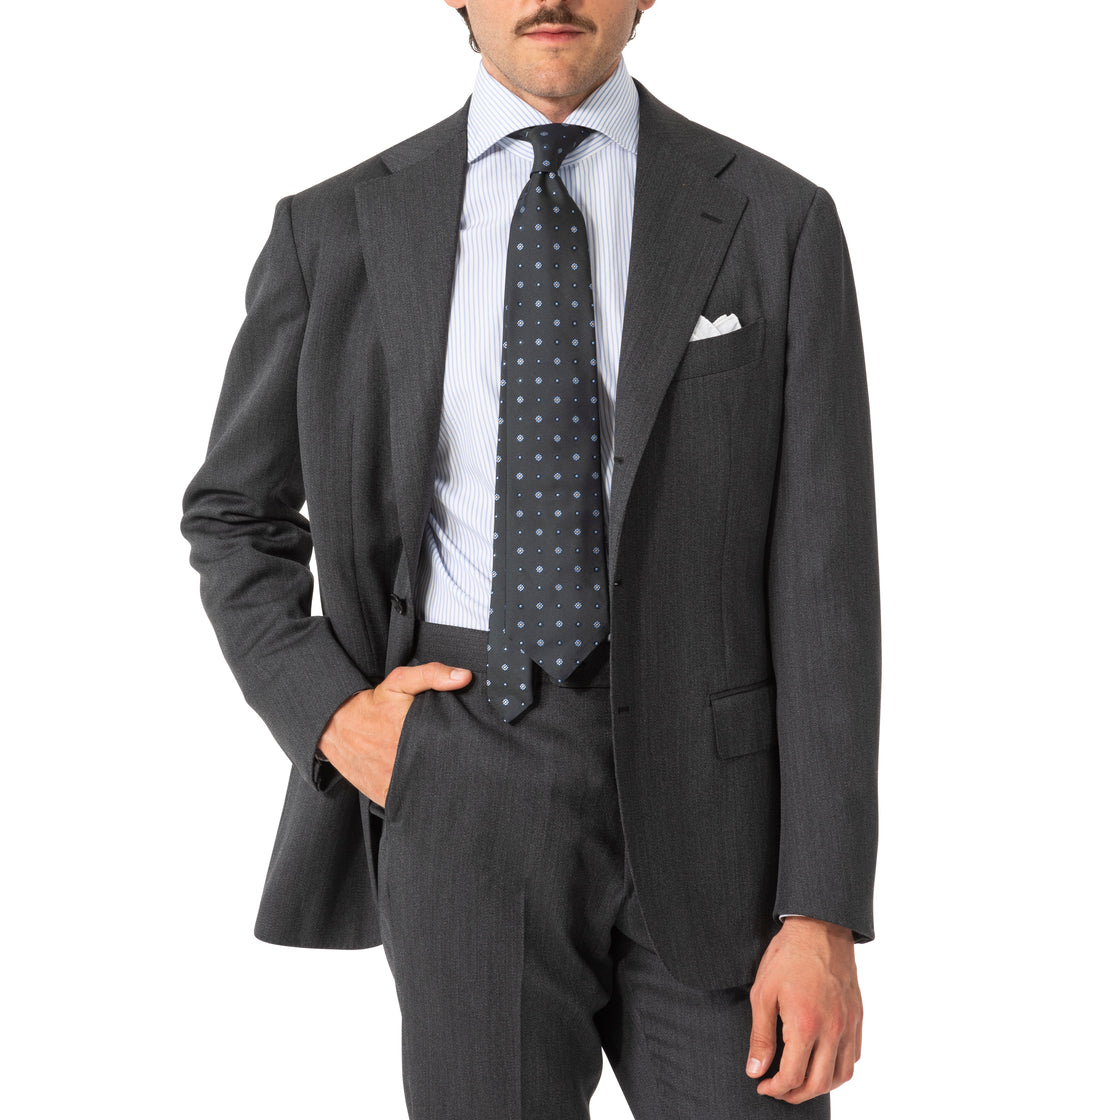 The Armoury Wool Calm Twist Model 3A Suit